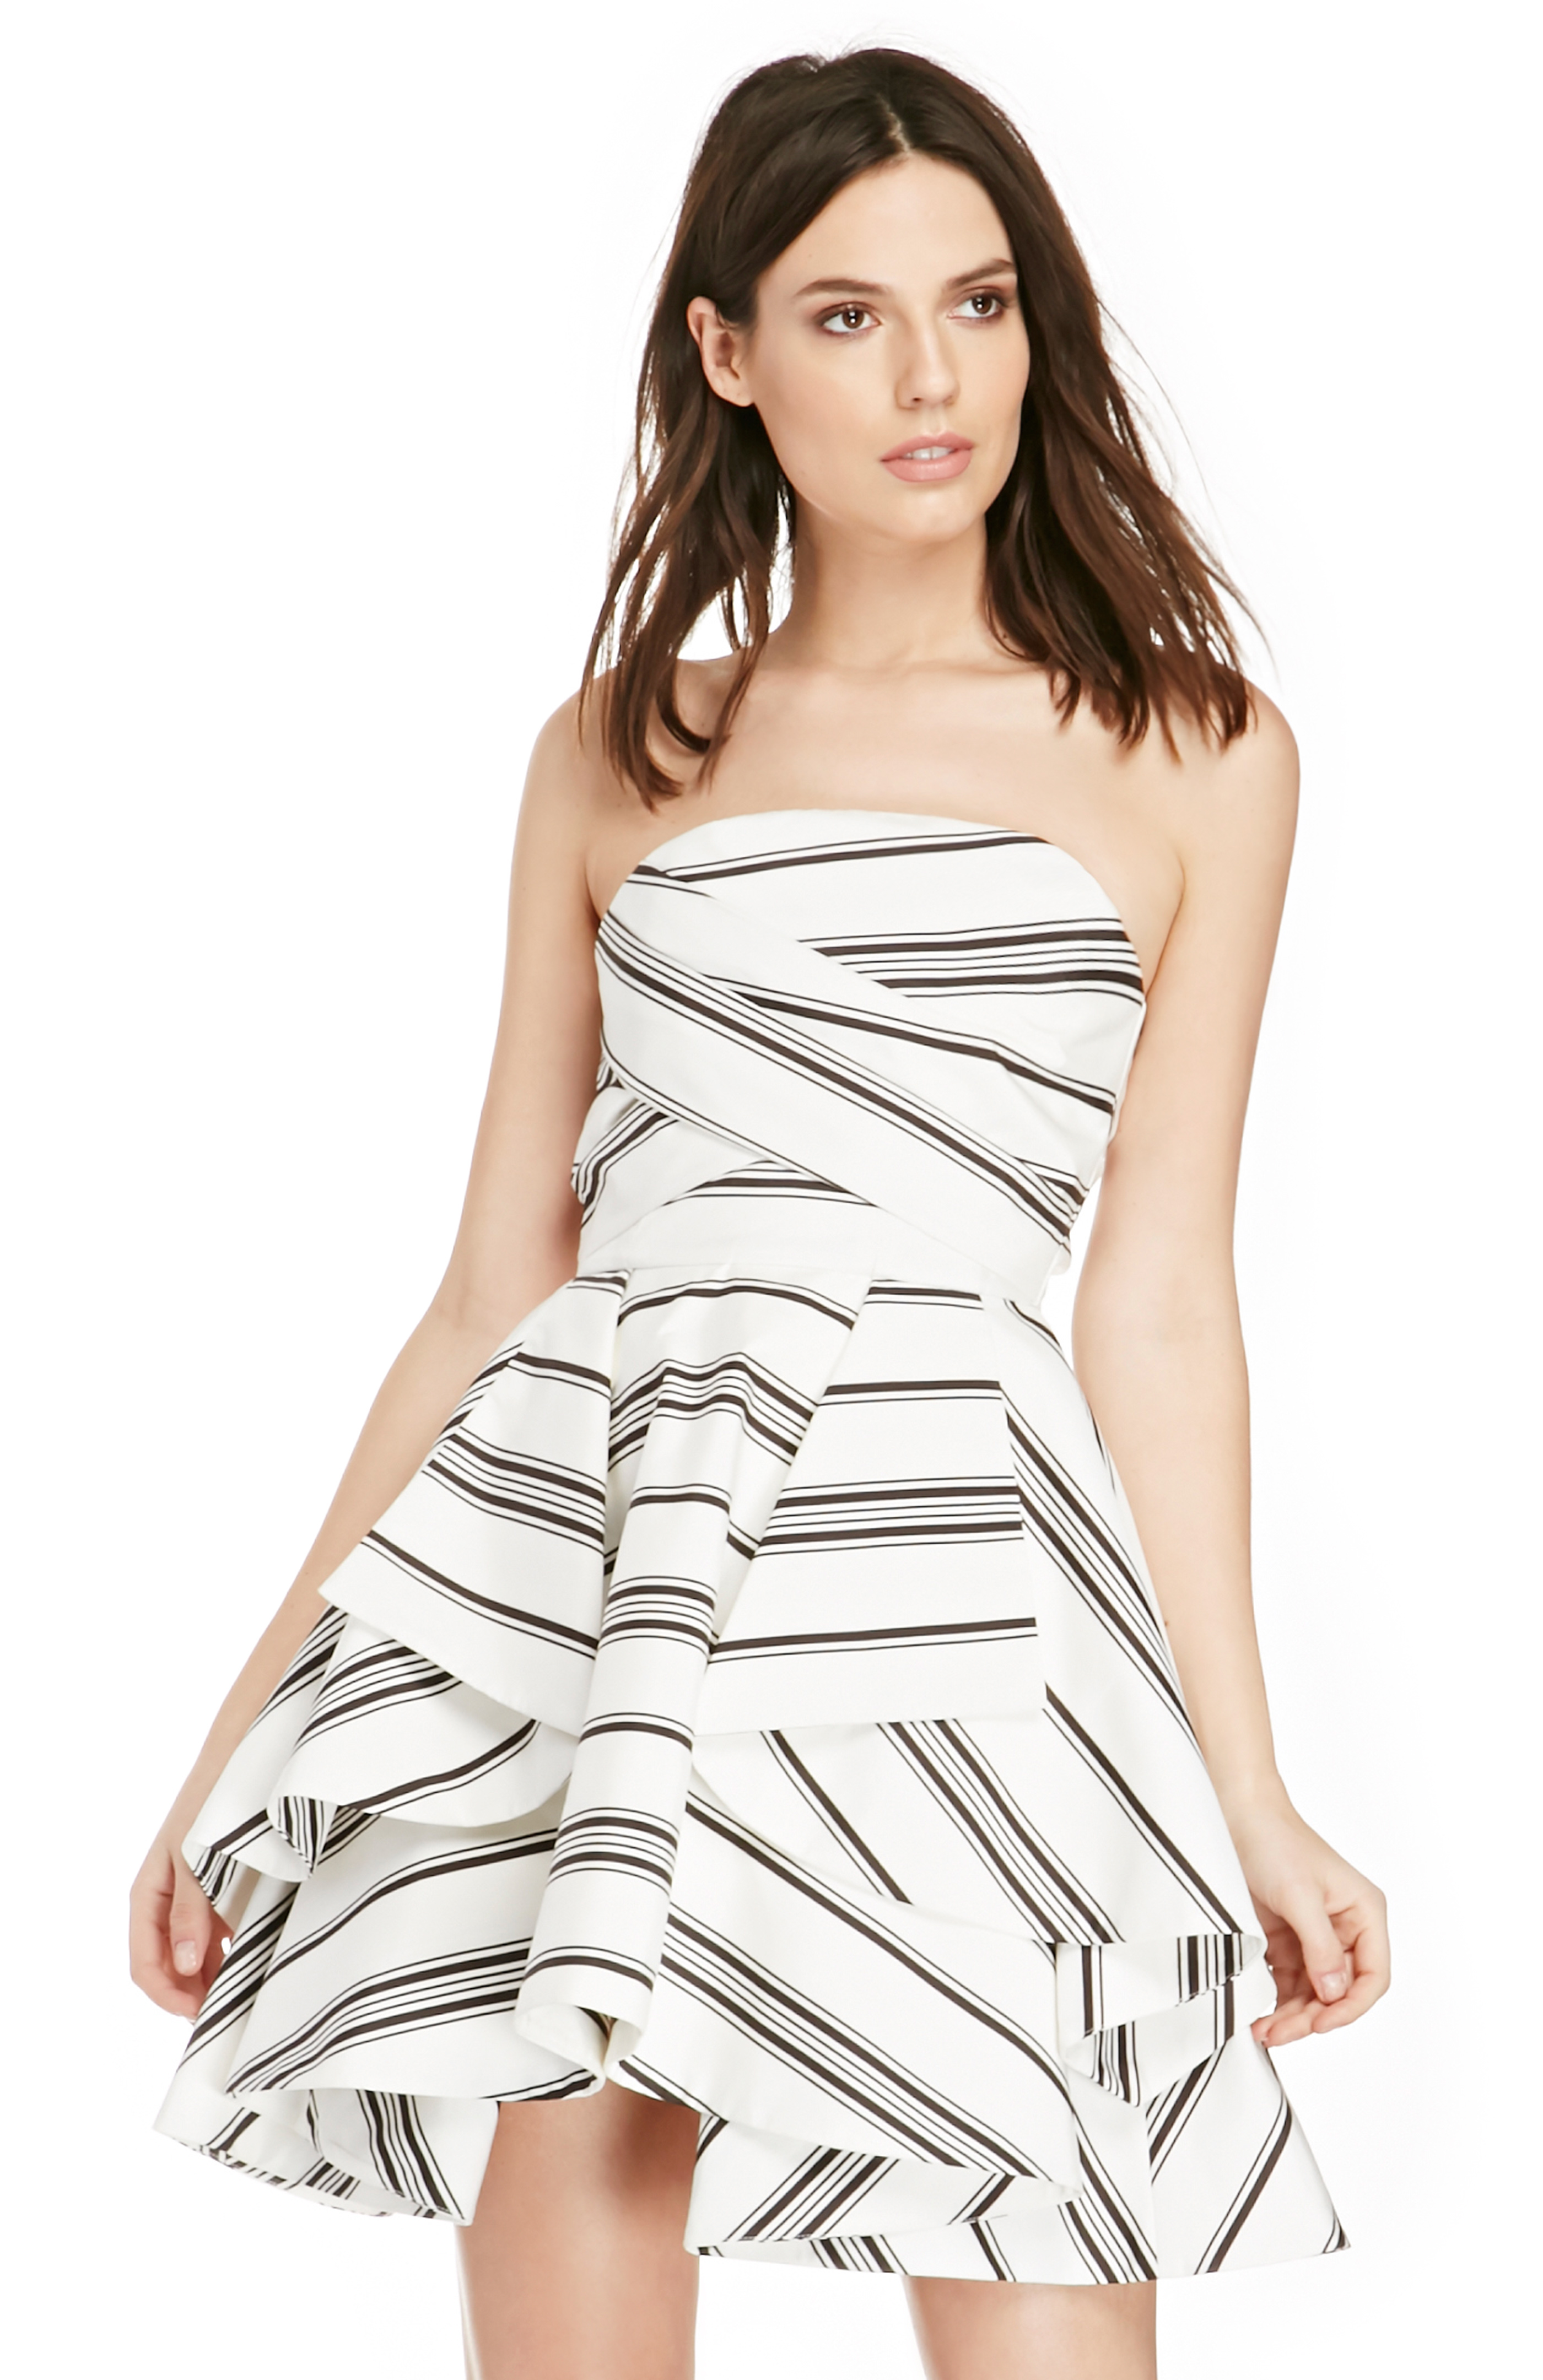 ea2055bbceaf7 Cameo Night Tale Striped Dress in Black/Ivory | DAILYLOOK